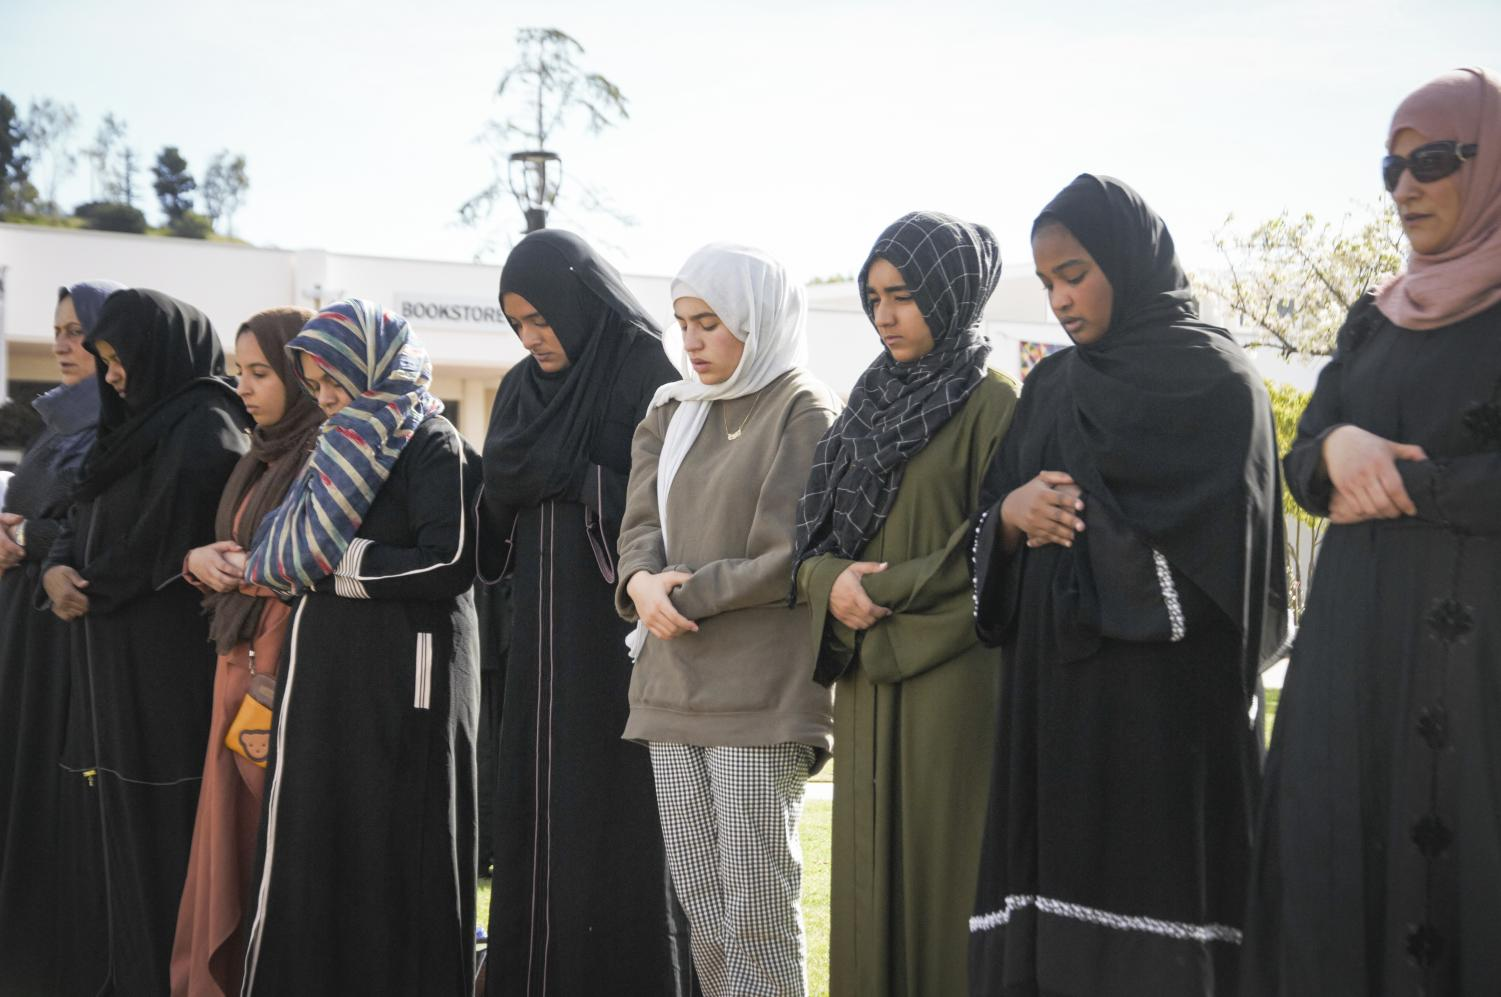 Members of the Moorpark College Muslim Student Association stand for the Jumu'ah prayer on campus on Friday, Jan. 31. The sermon and prayer is the final celebration for Islam Awareness Week. Photo credit: Morgan Ellis